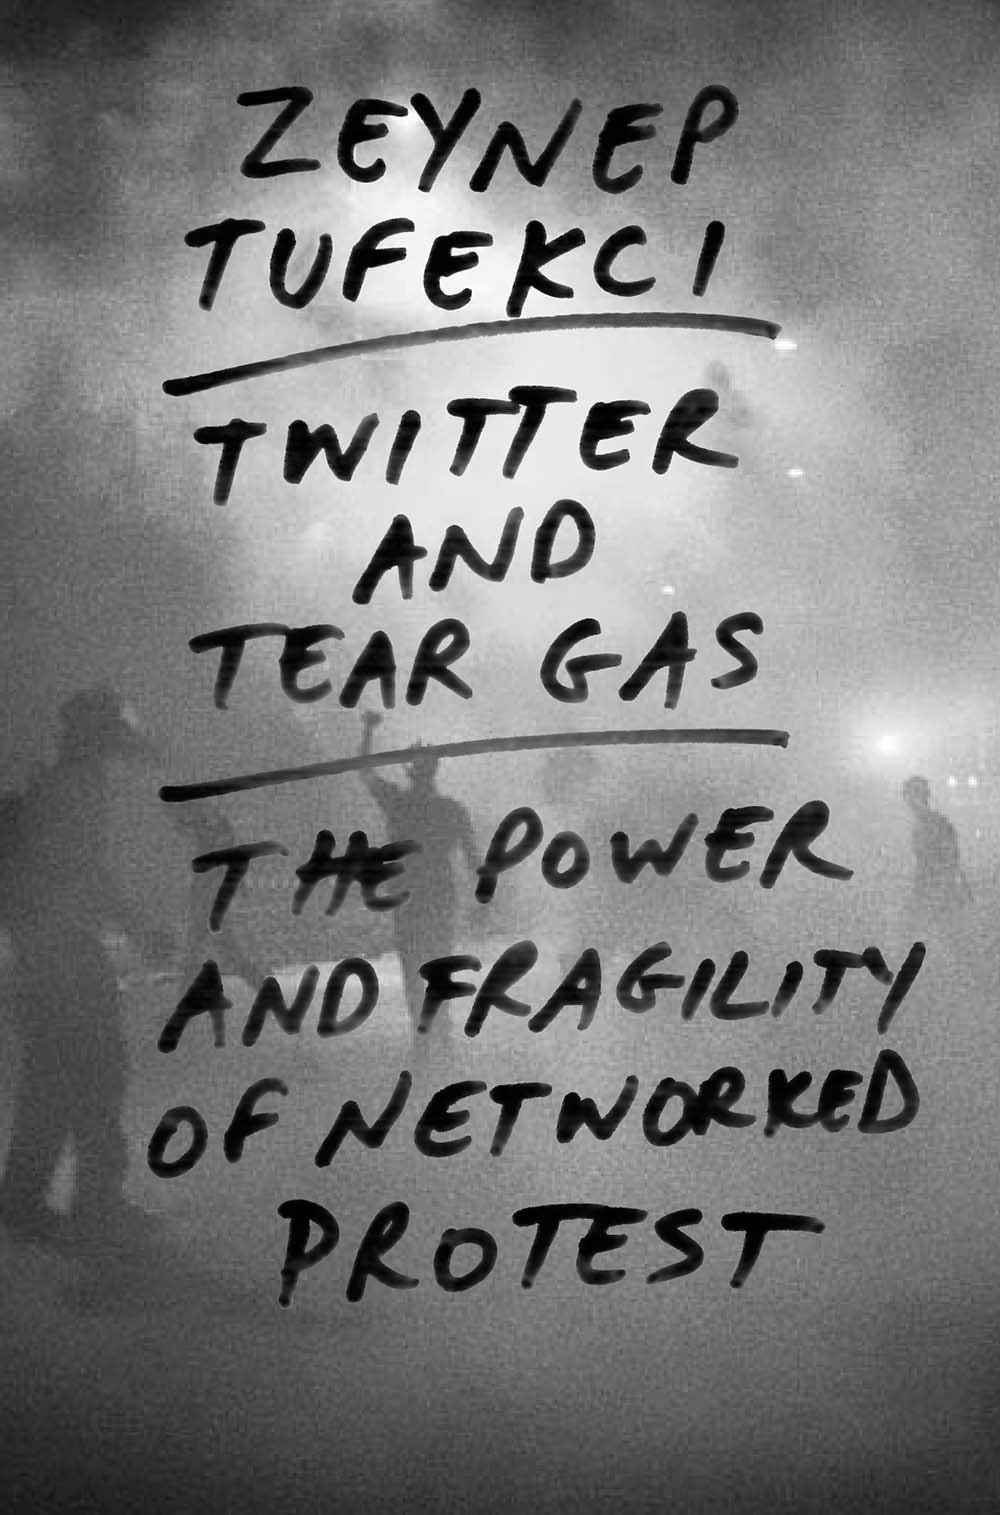 *Twitter and Tear Gas: The Power and Fragility of Networked Protest*